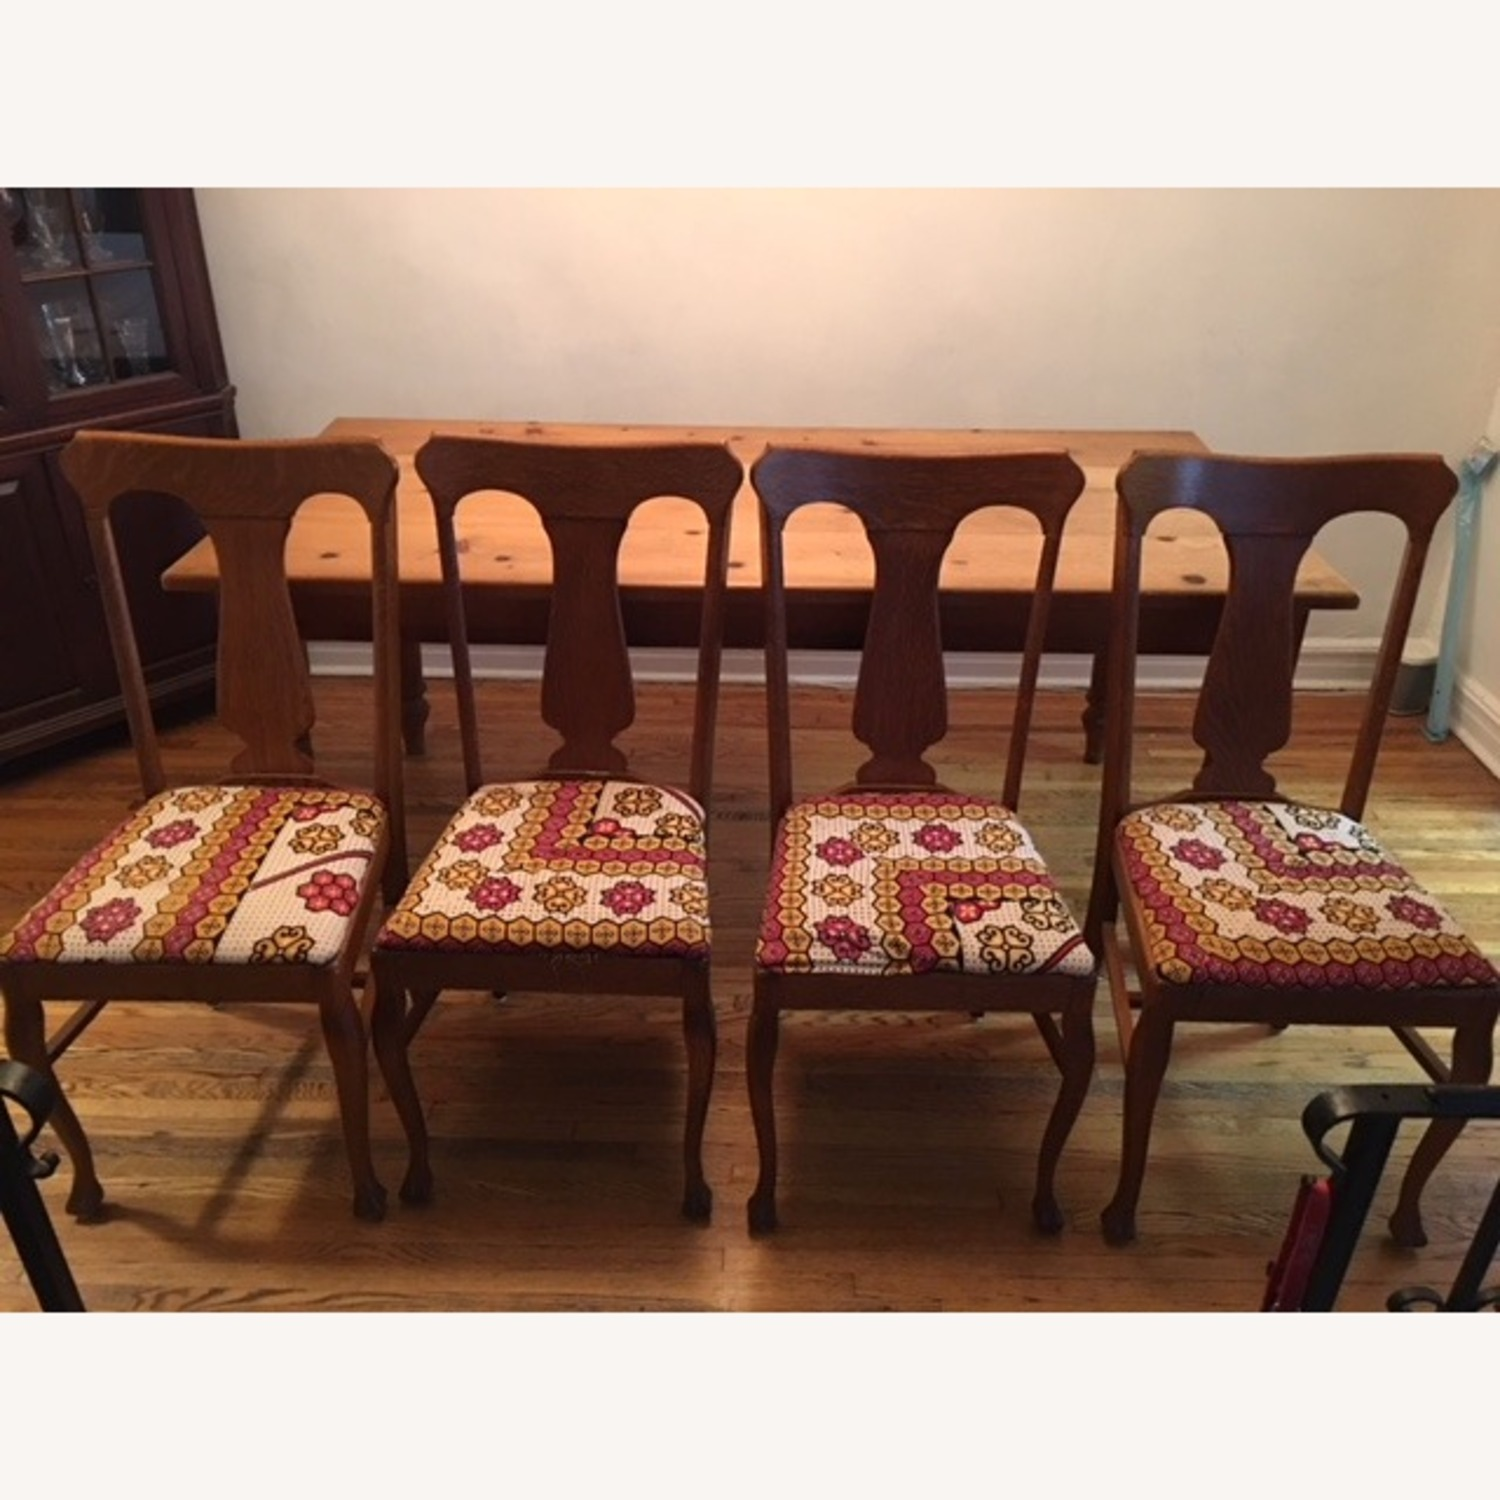 4 Farm Dining Chairs - image-3